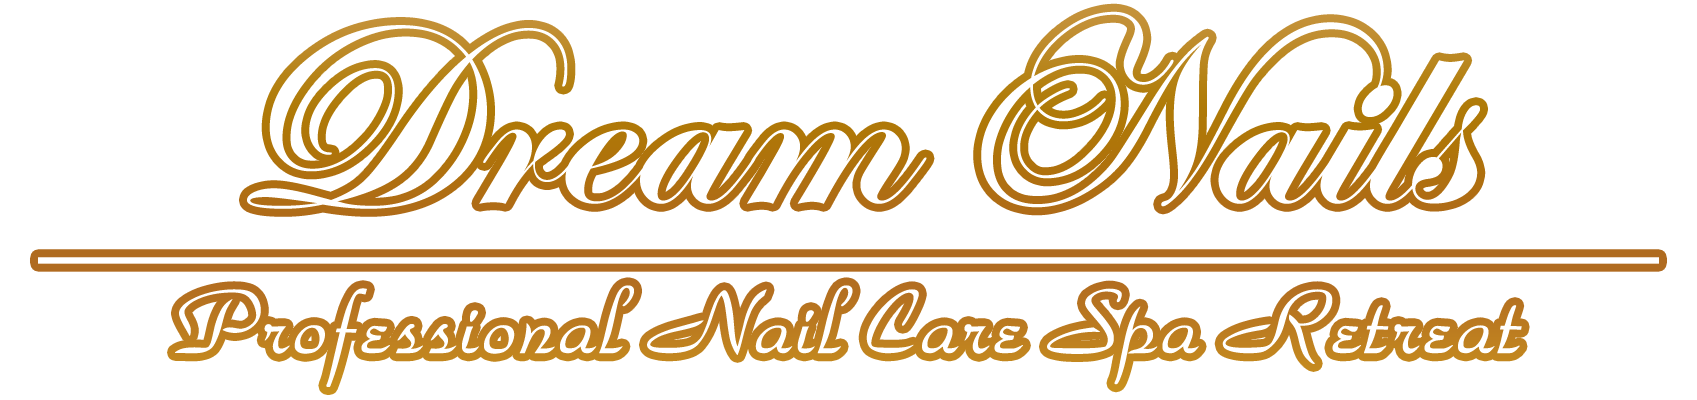 Booking - Dream Nails - Nail Salon North Haven CT 06473